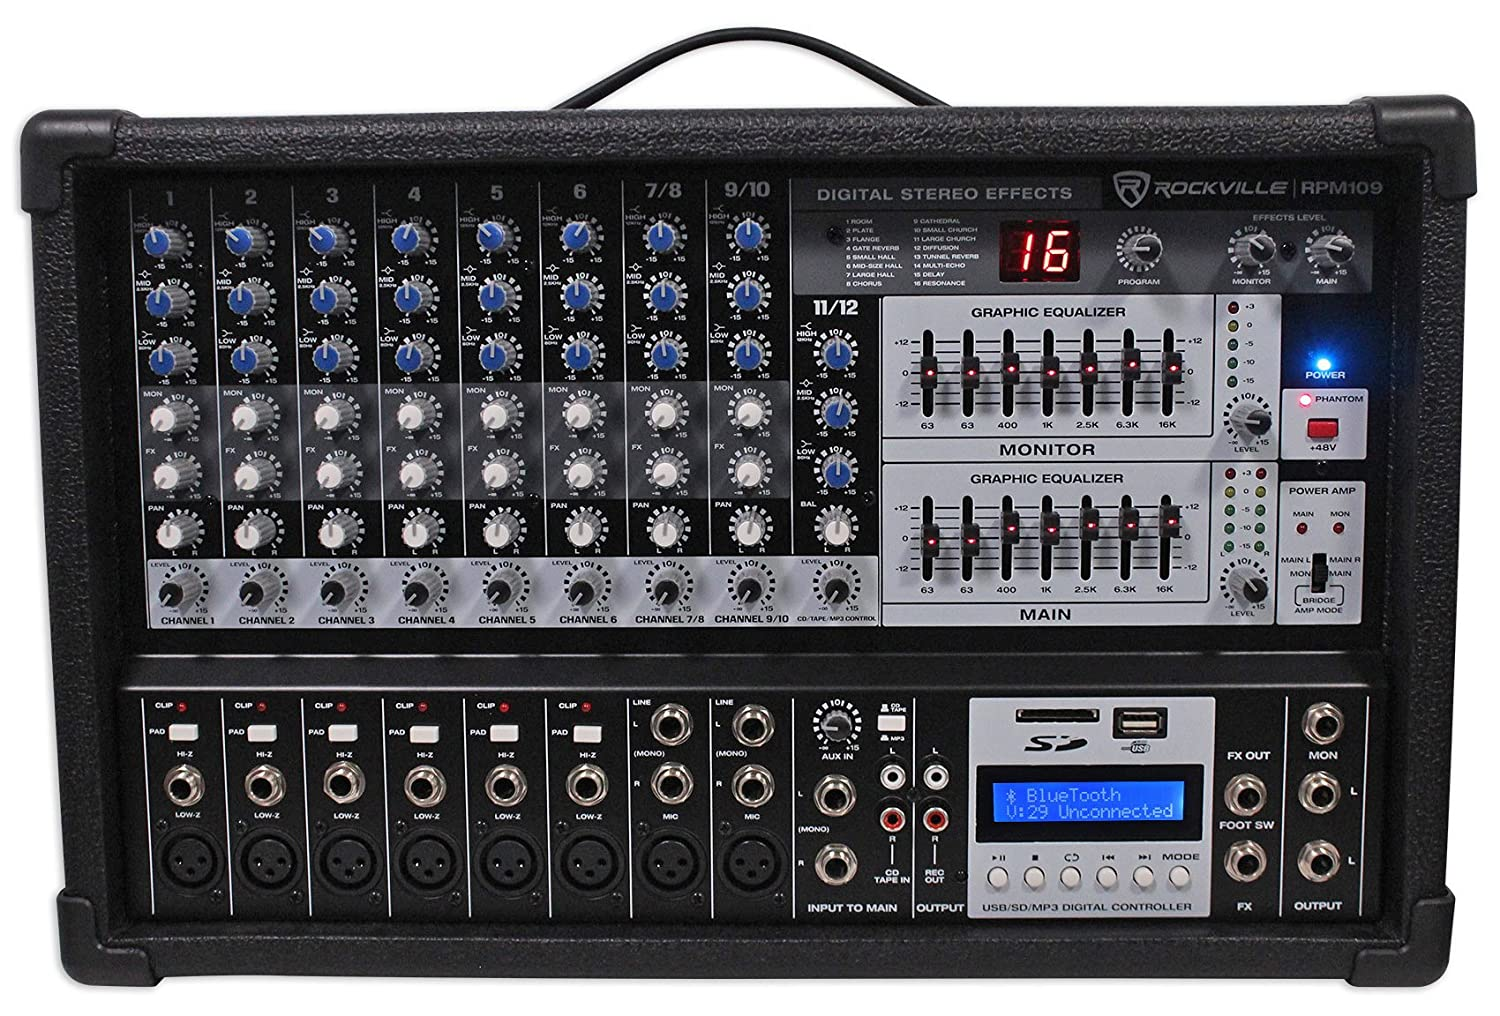 Rockville RPM85 2400w Powered 8 Channel Mixer, USB, 5 Band EQ, Effects/Bluetooth Audiosavings